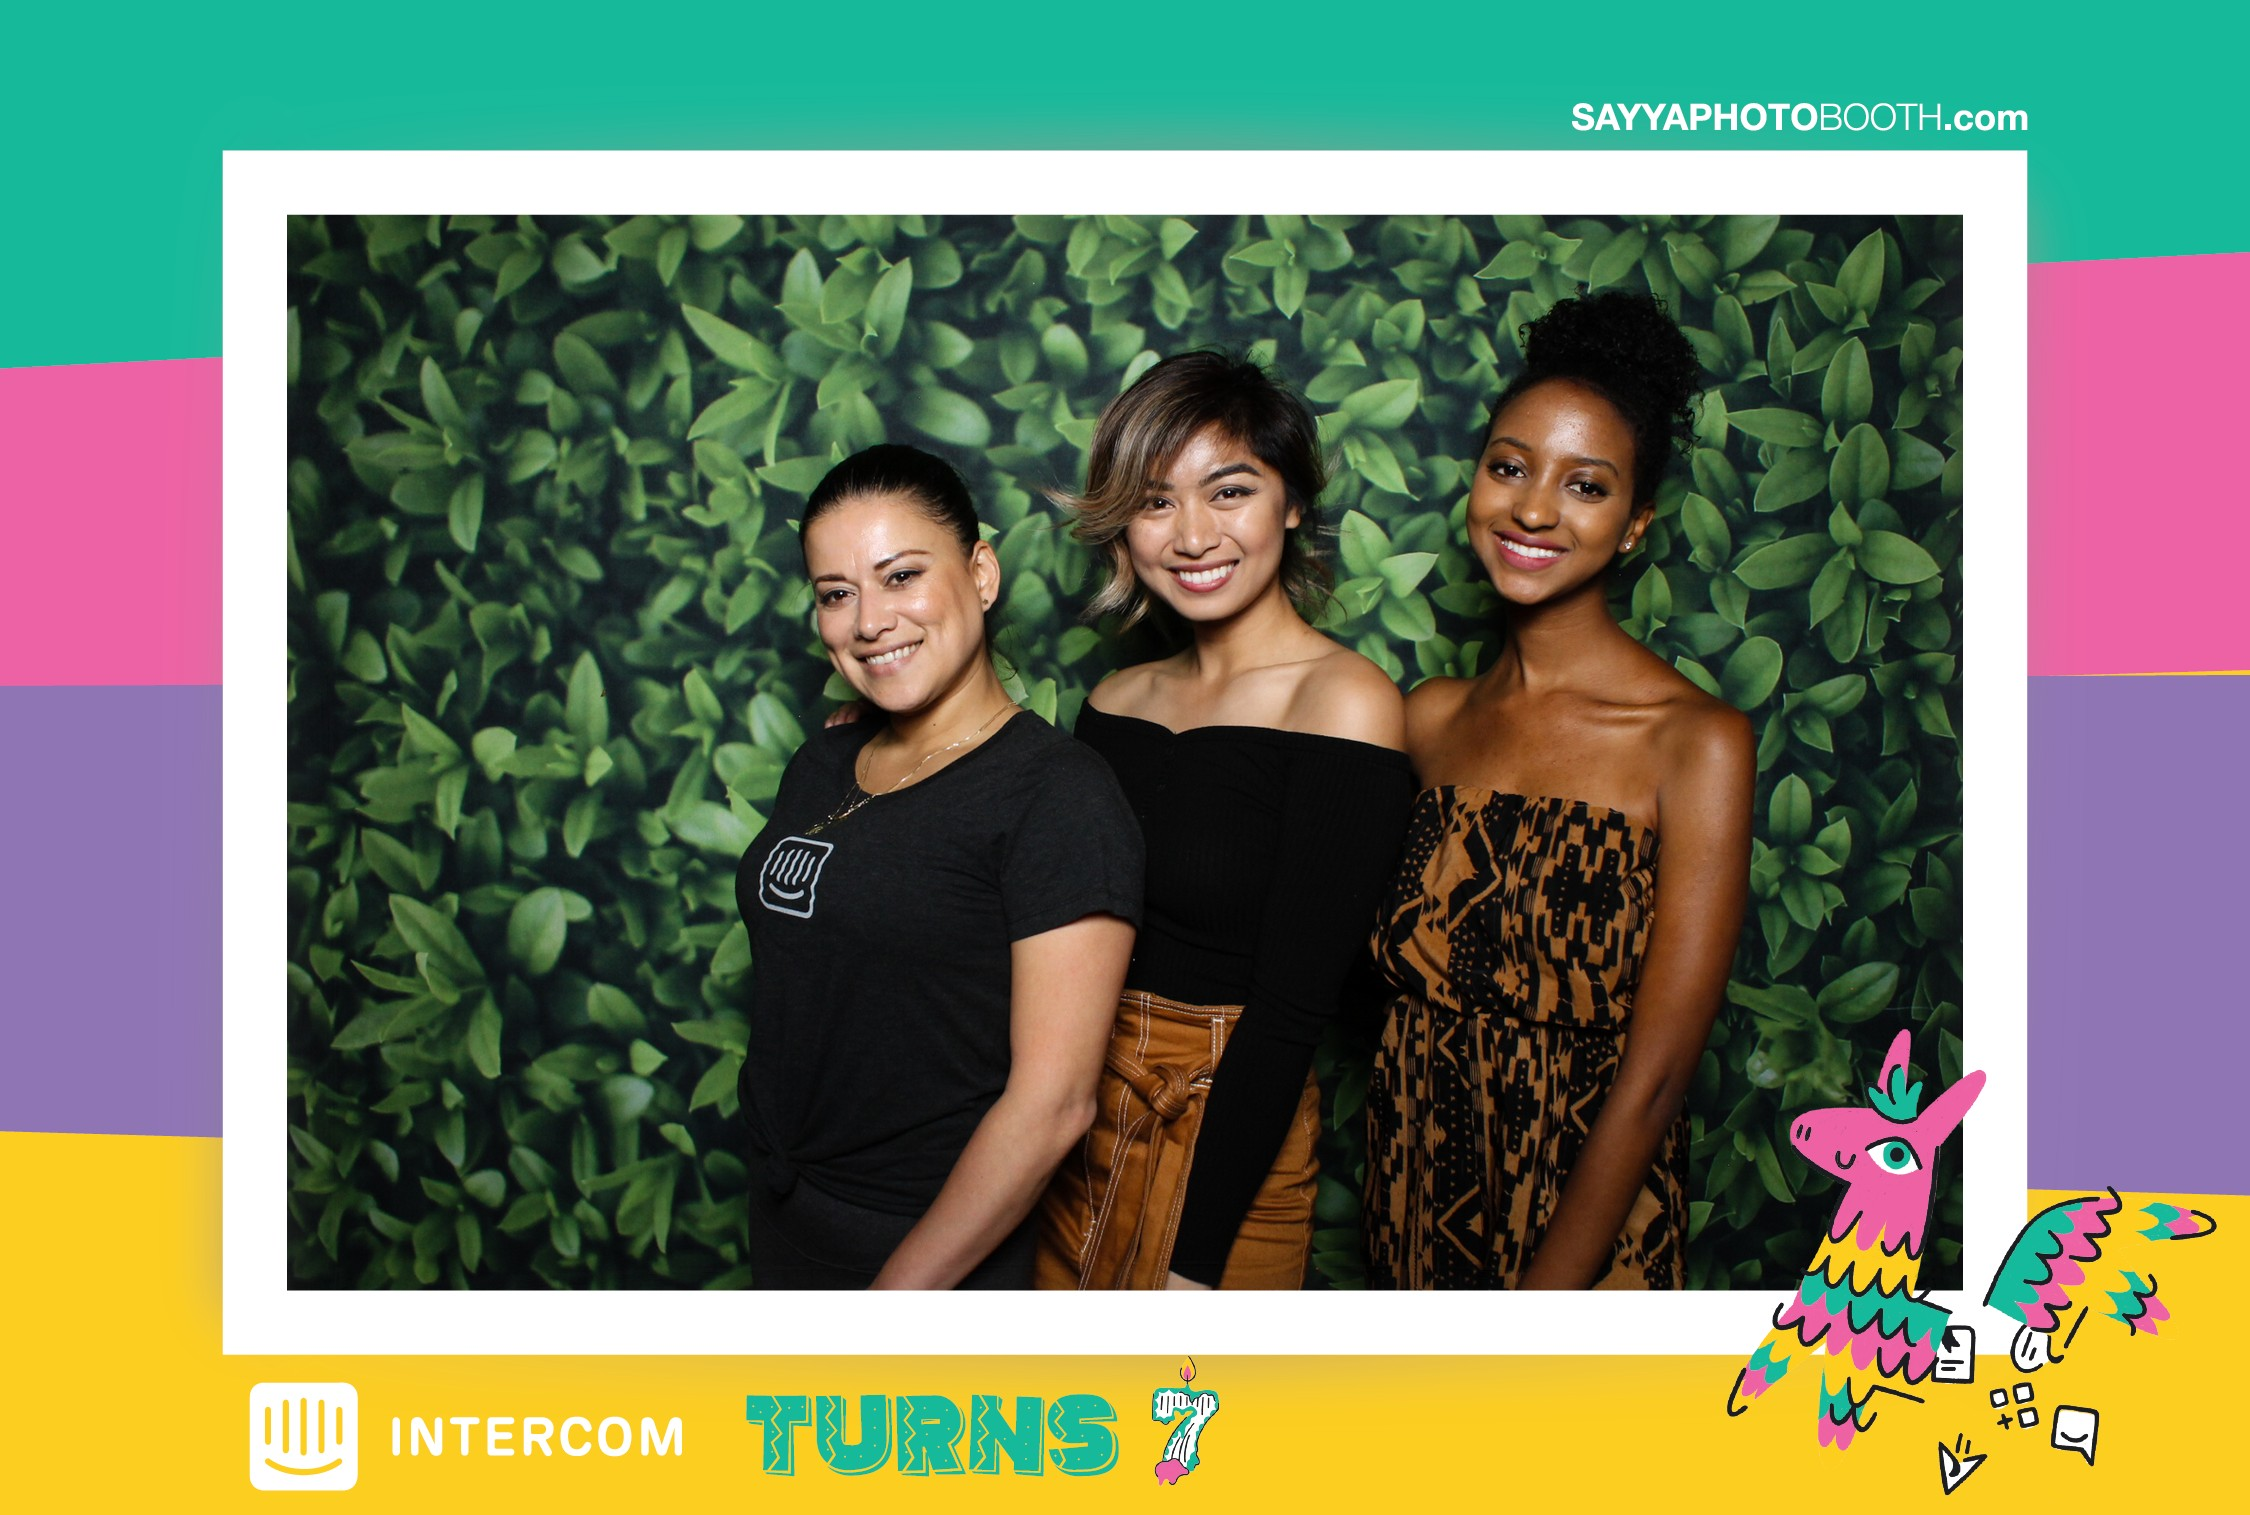 Intercom Birthday Party